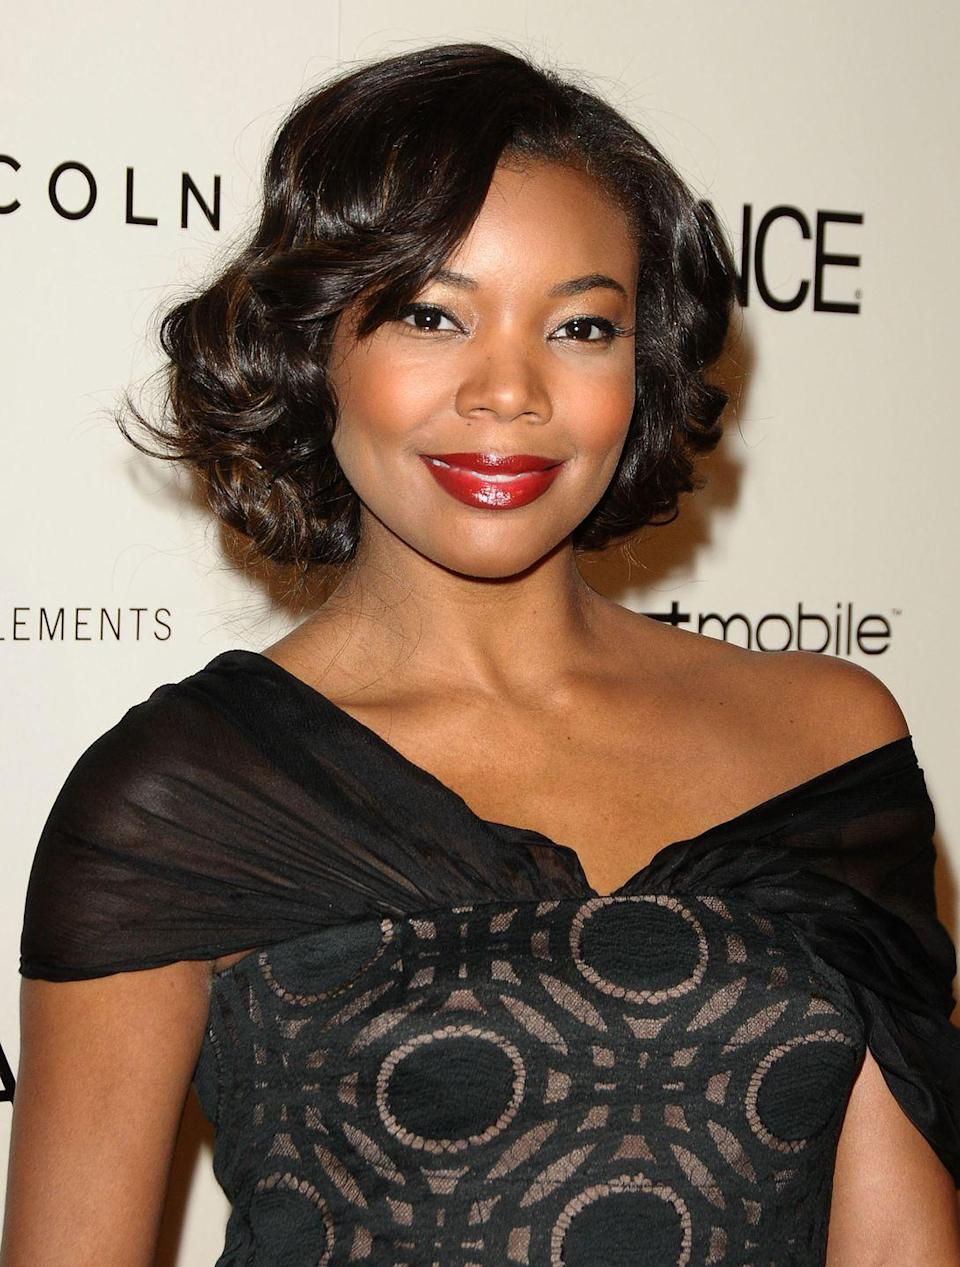 """<p>Go retro-cute like <strong>Gabrielle Union</strong> with loose pin curls that look gorgeous with an elegant dress and a long <a href=""""https://www.goodhousekeeping.com/beauty/makeup/g30625811/best-magnetic-eyelashes/"""" rel=""""nofollow noopener"""" target=""""_blank"""" data-ylk=""""slk:set of lashes"""" class=""""link rapid-noclick-resp"""">set of lashes</a>.</p>"""